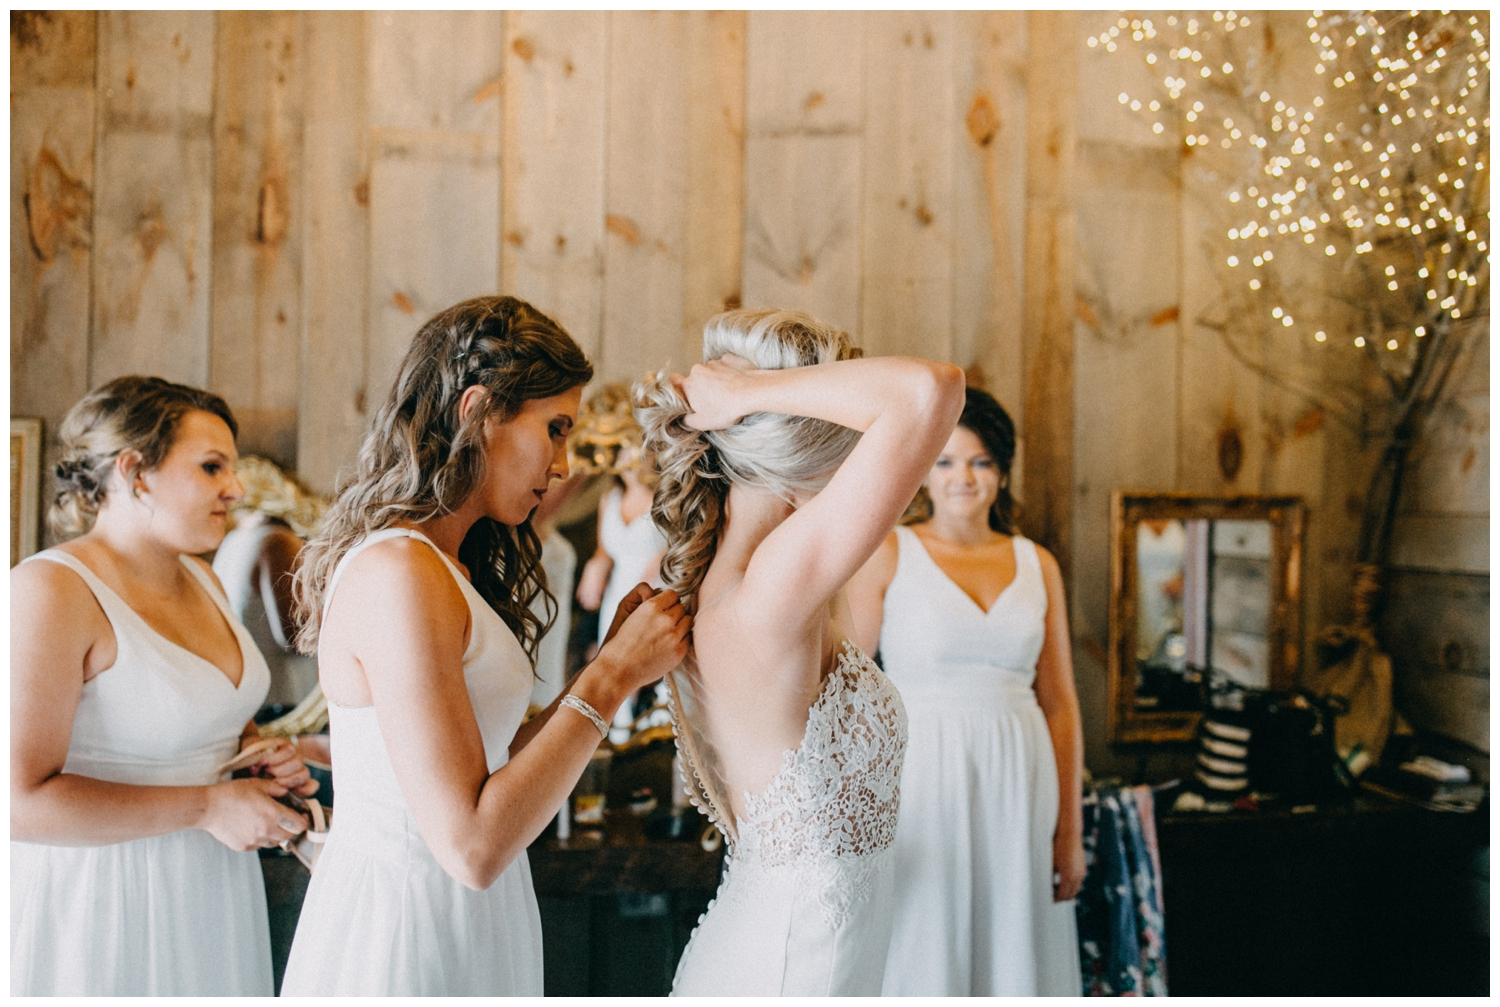 Bridesmaid helping button brides wedding dress at Creekside Farm in Rush City, MN